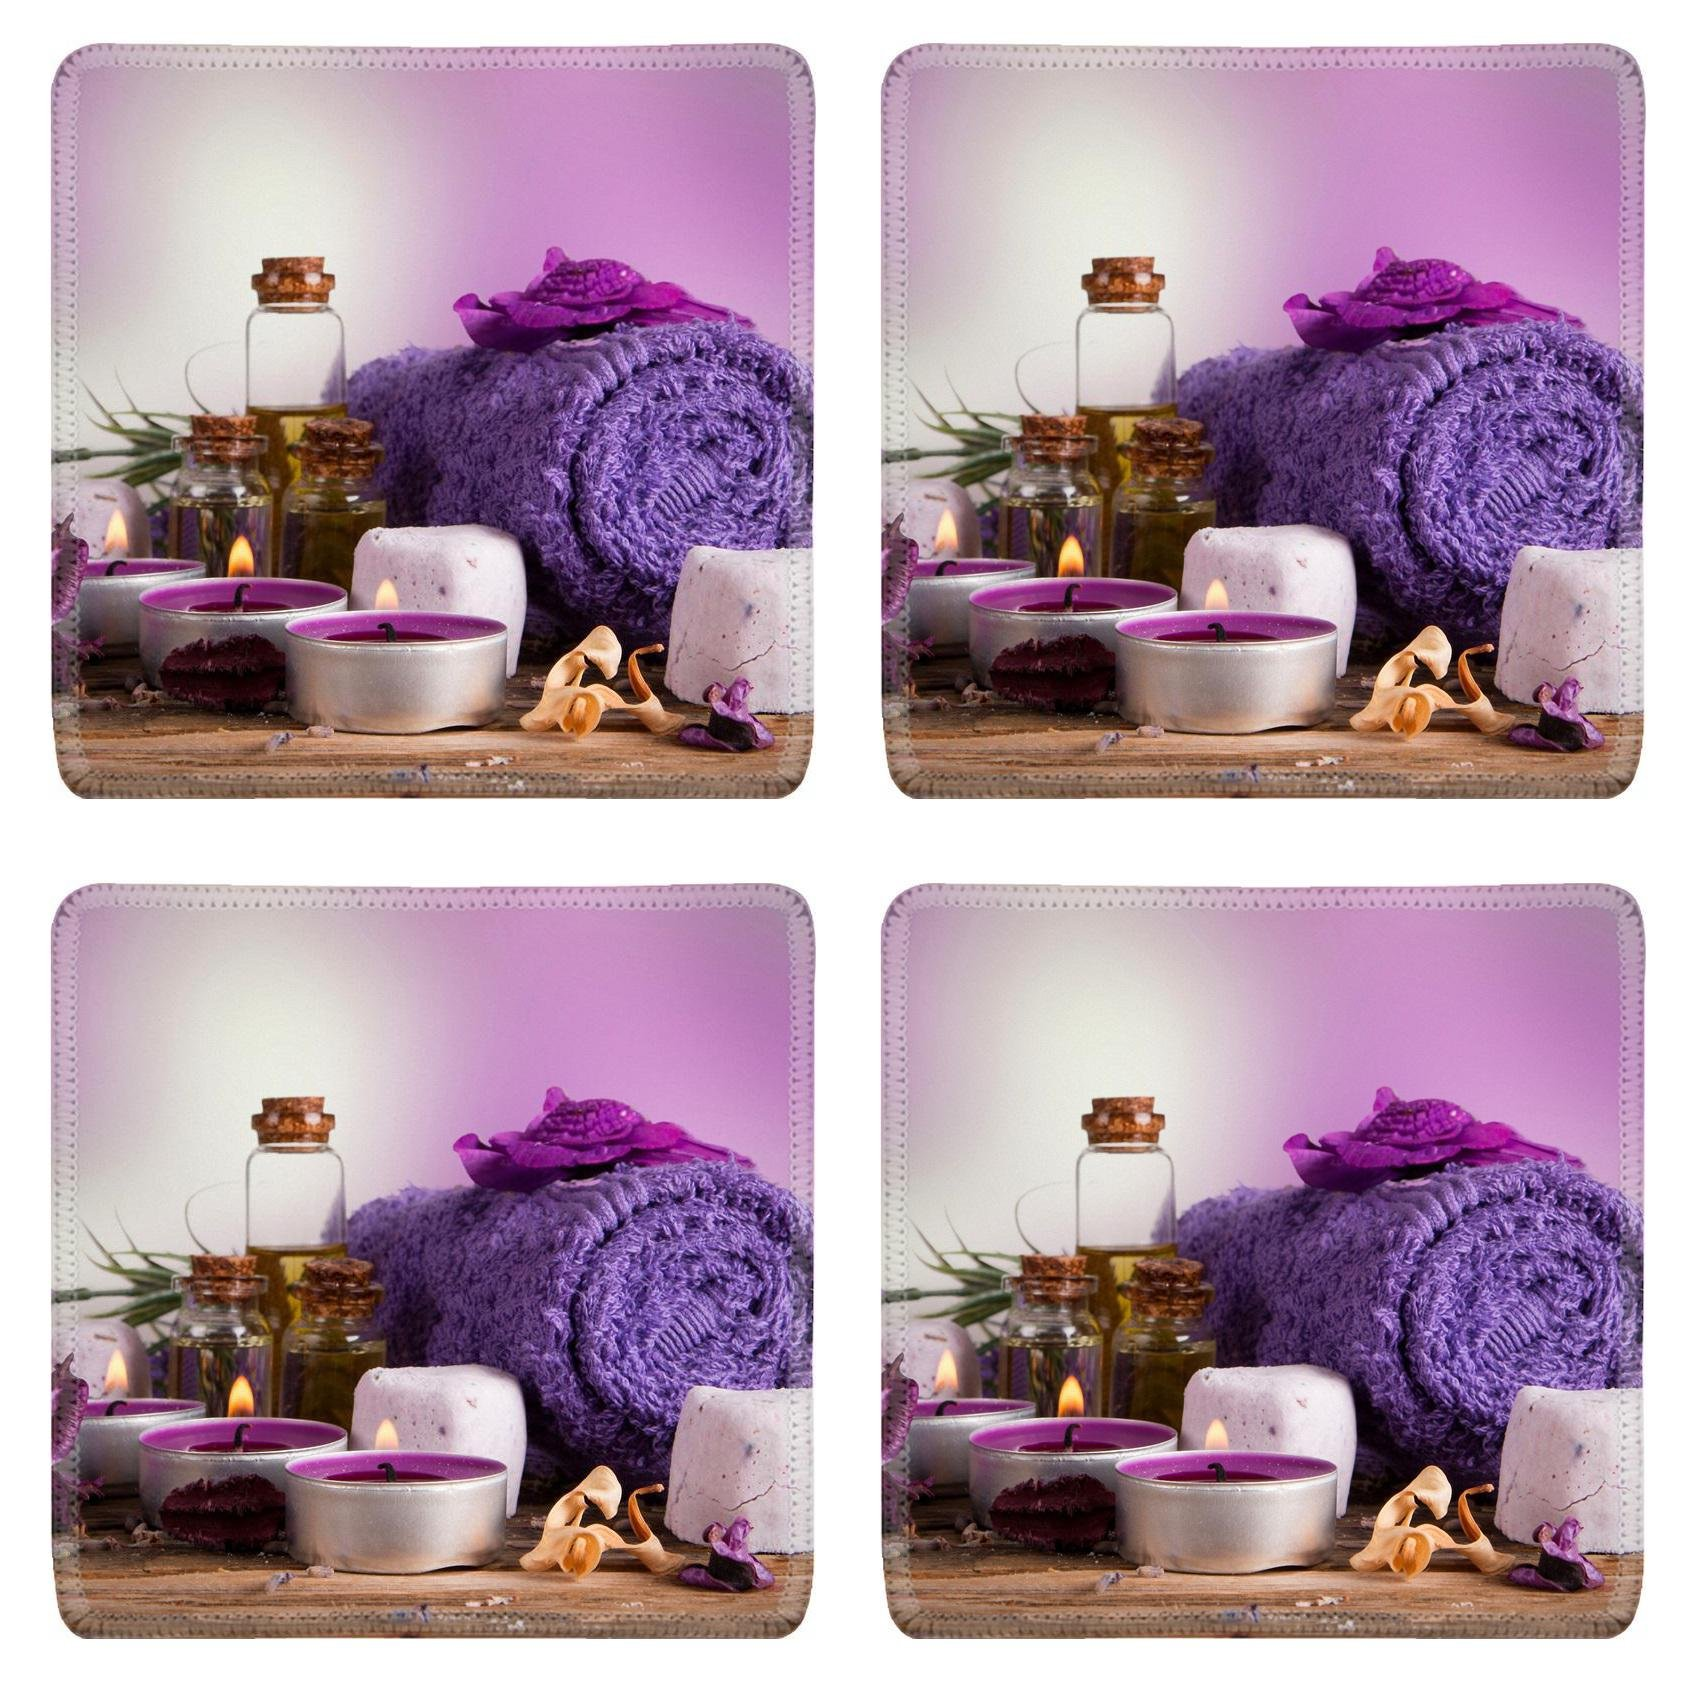 MSD Square Coasters Non-Slip Natural Rubber Desk Coasters design 33940016 spa concept with candles and flowers